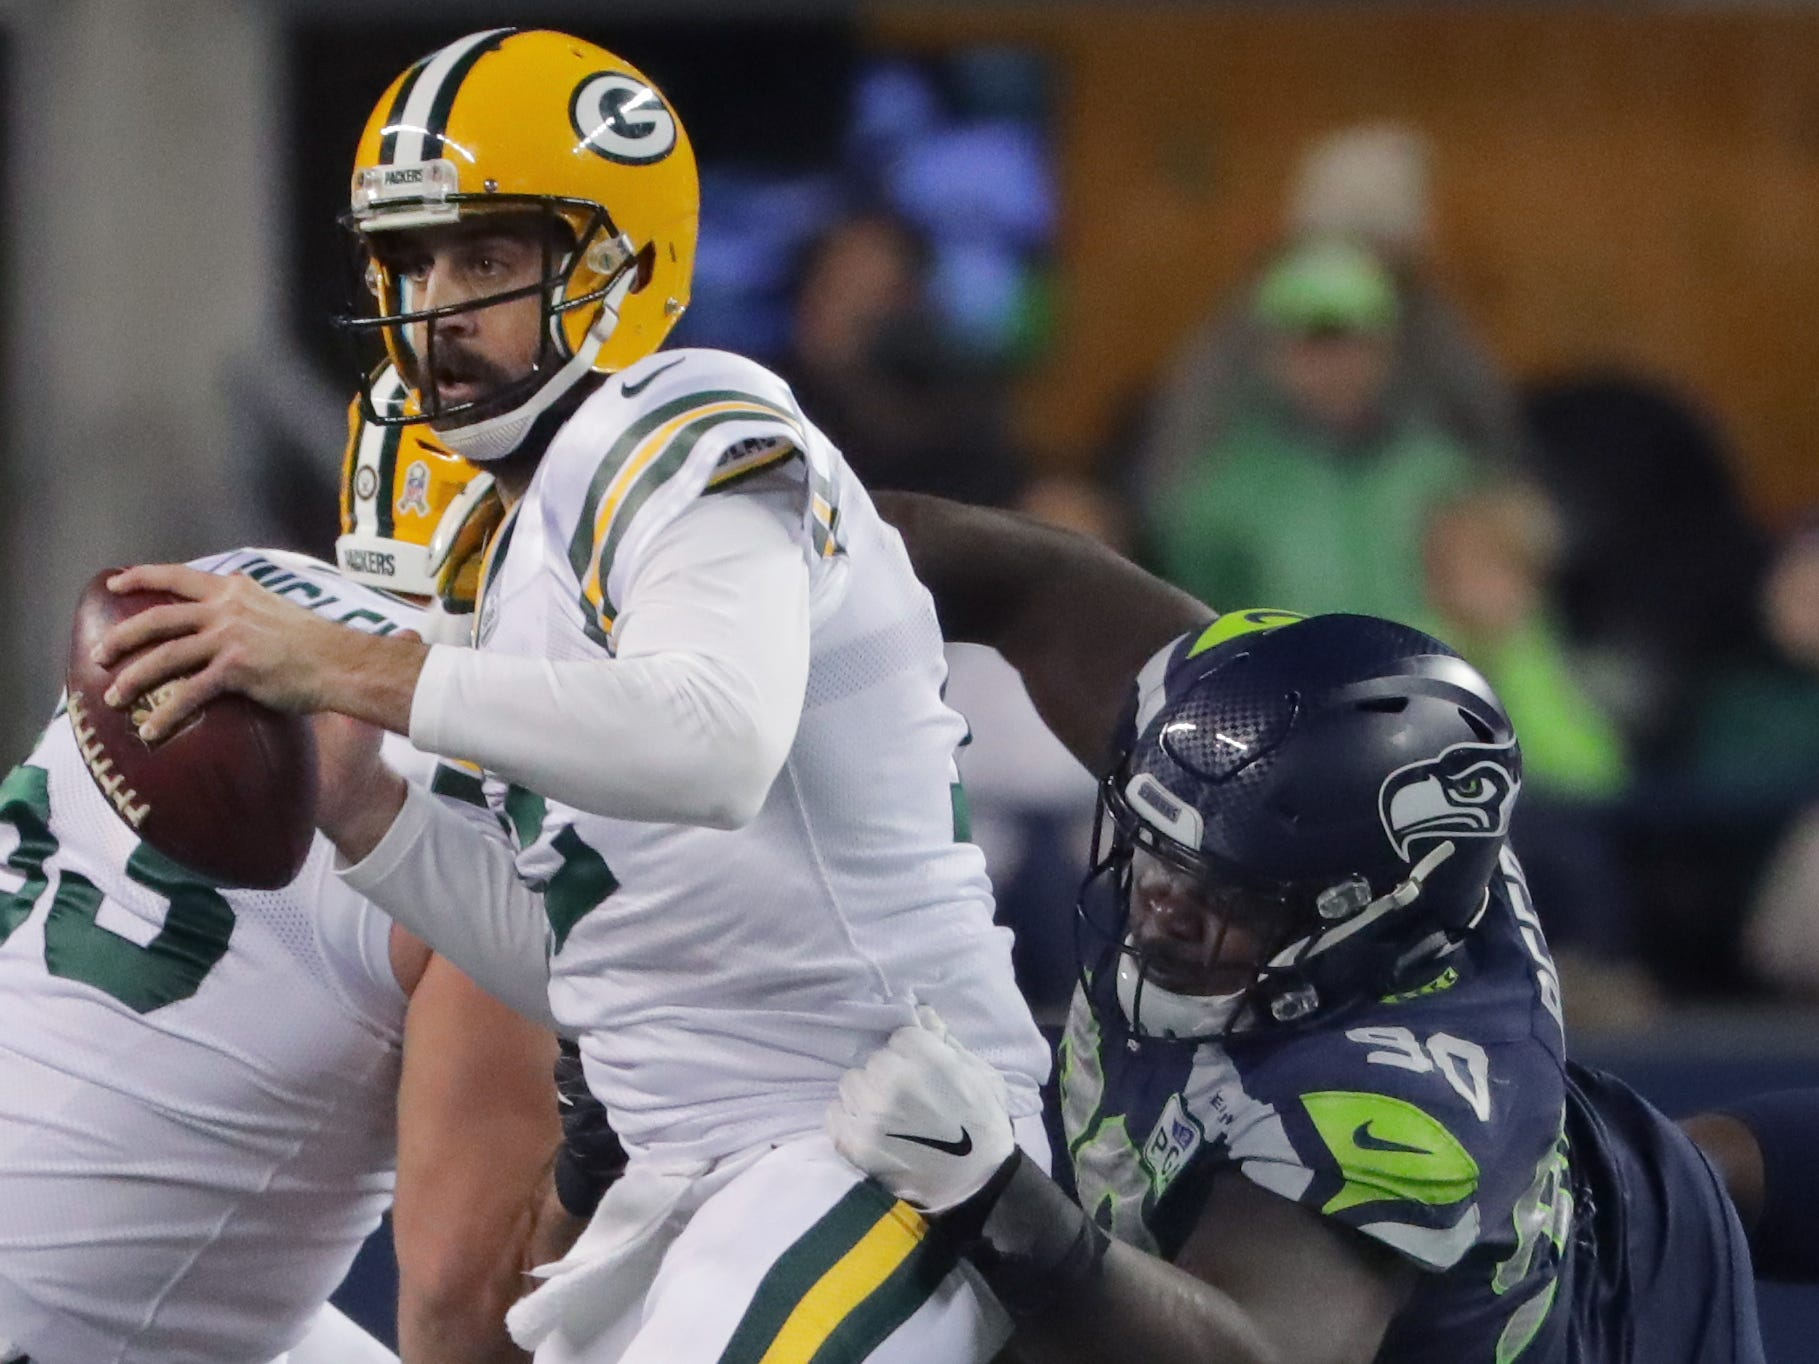 Green Bay Packers' Aaron Rodgers (12) is sacked by  Seattle Seahawks defensive tackle Jarran Reed during the third quarter of their game Thursday, November 25, 2018 at CenturyLink Field in Seattle, Wash.